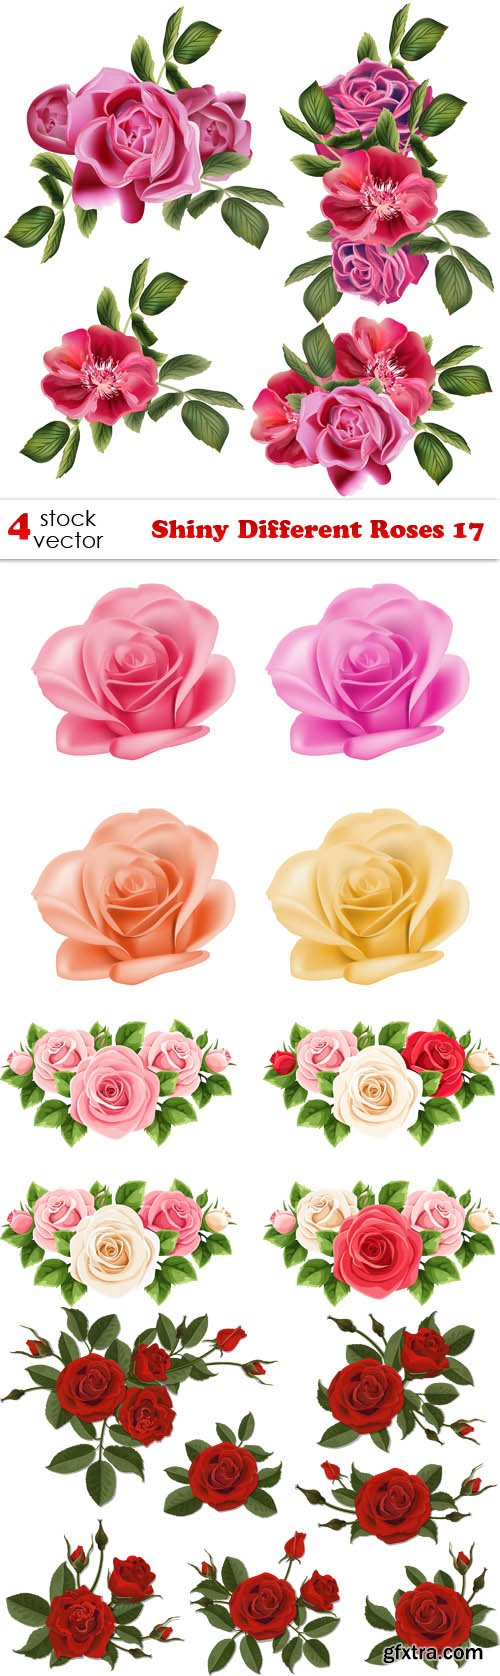 Vectors - Shiny Different Roses 17